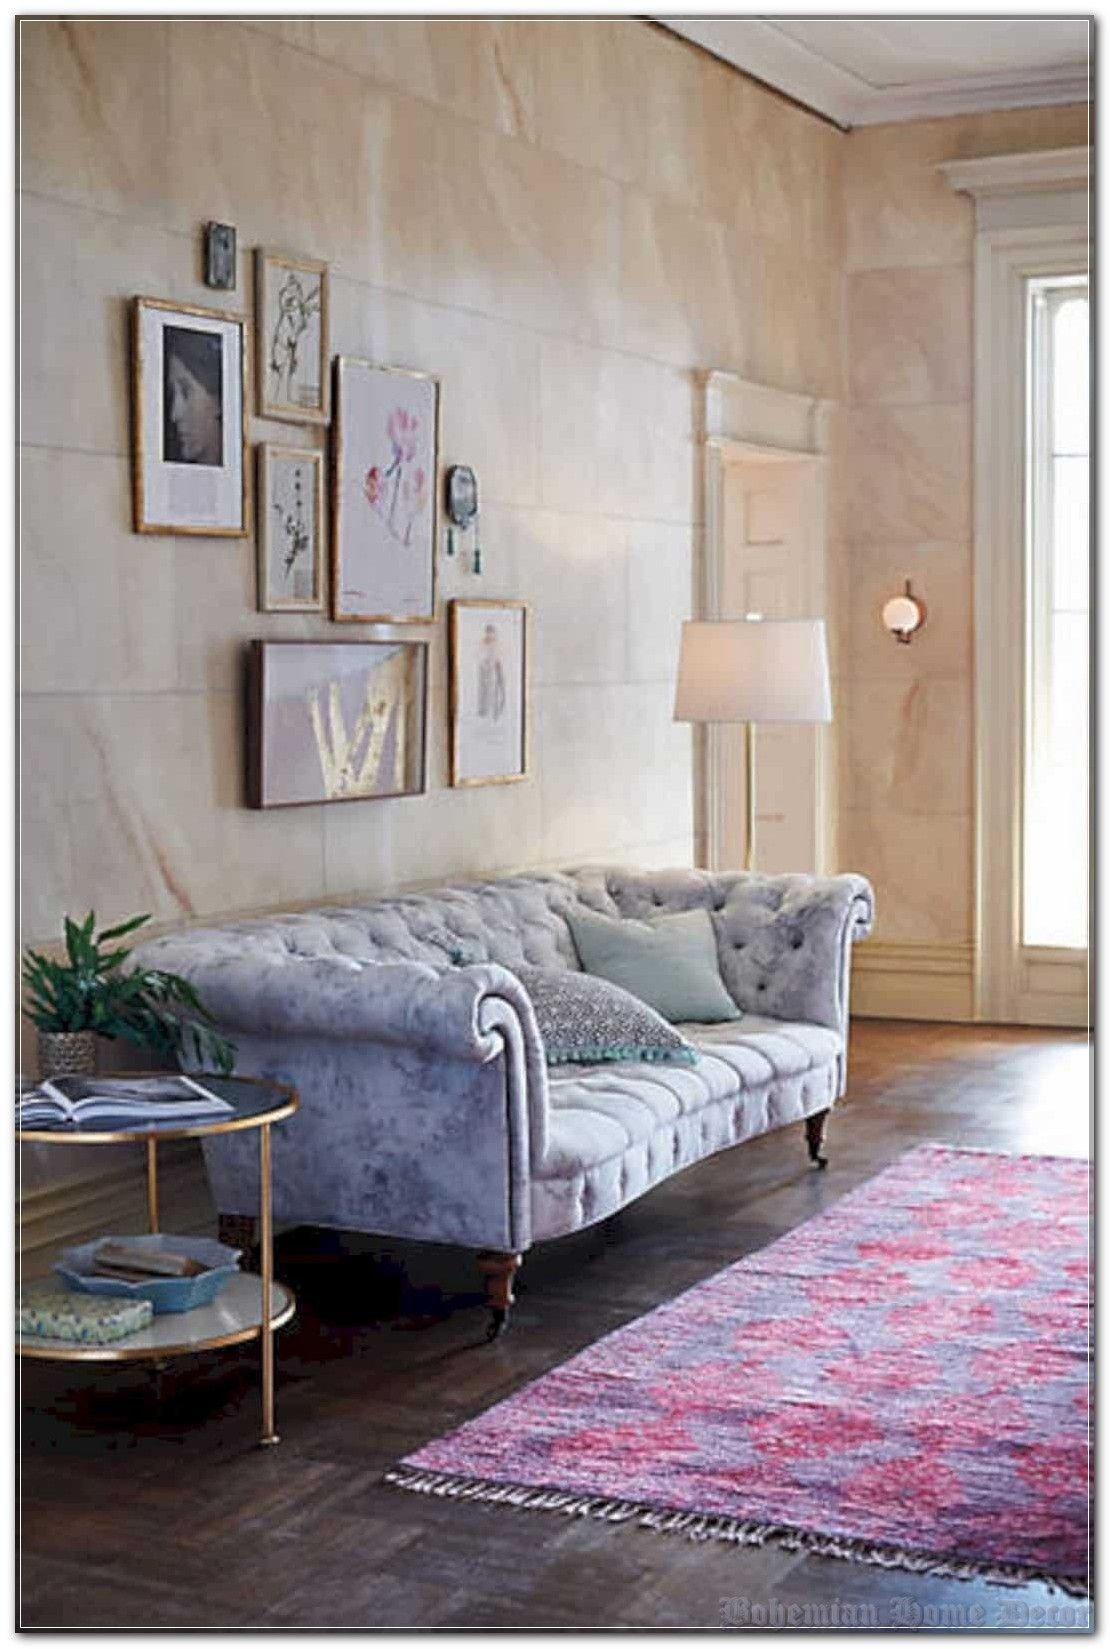 10 Tips That Will Change The Way You Bohemian Home Decor